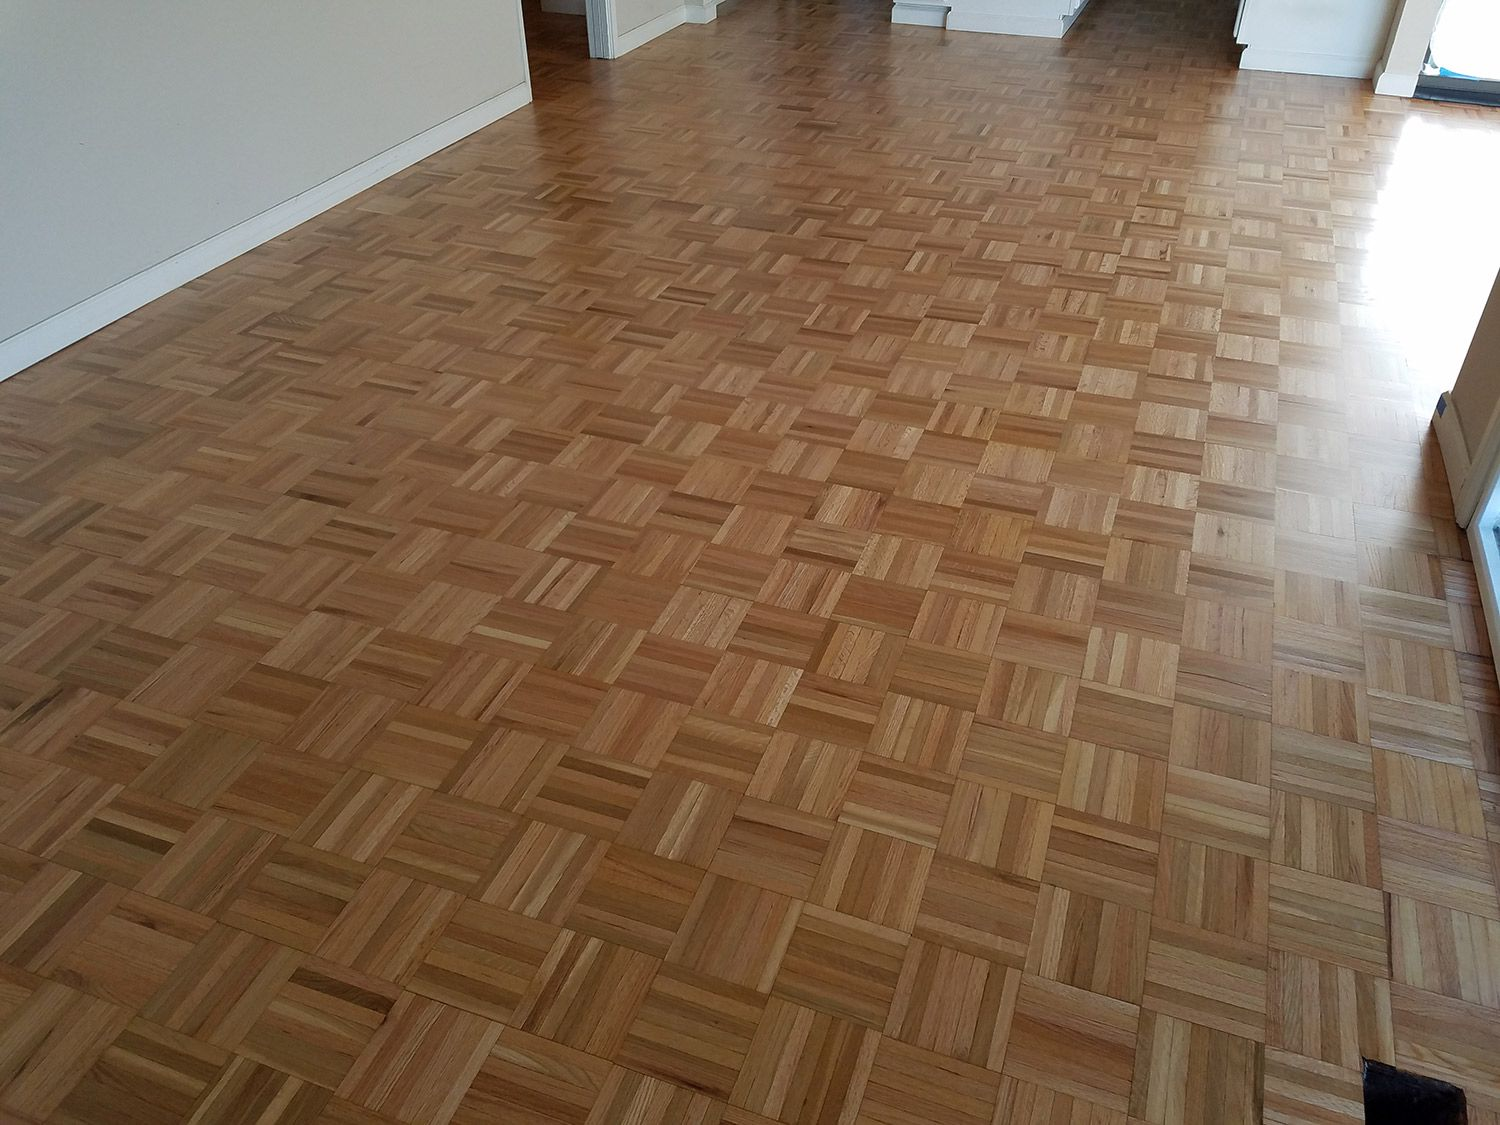 Refinishing Oak Parquet Floors